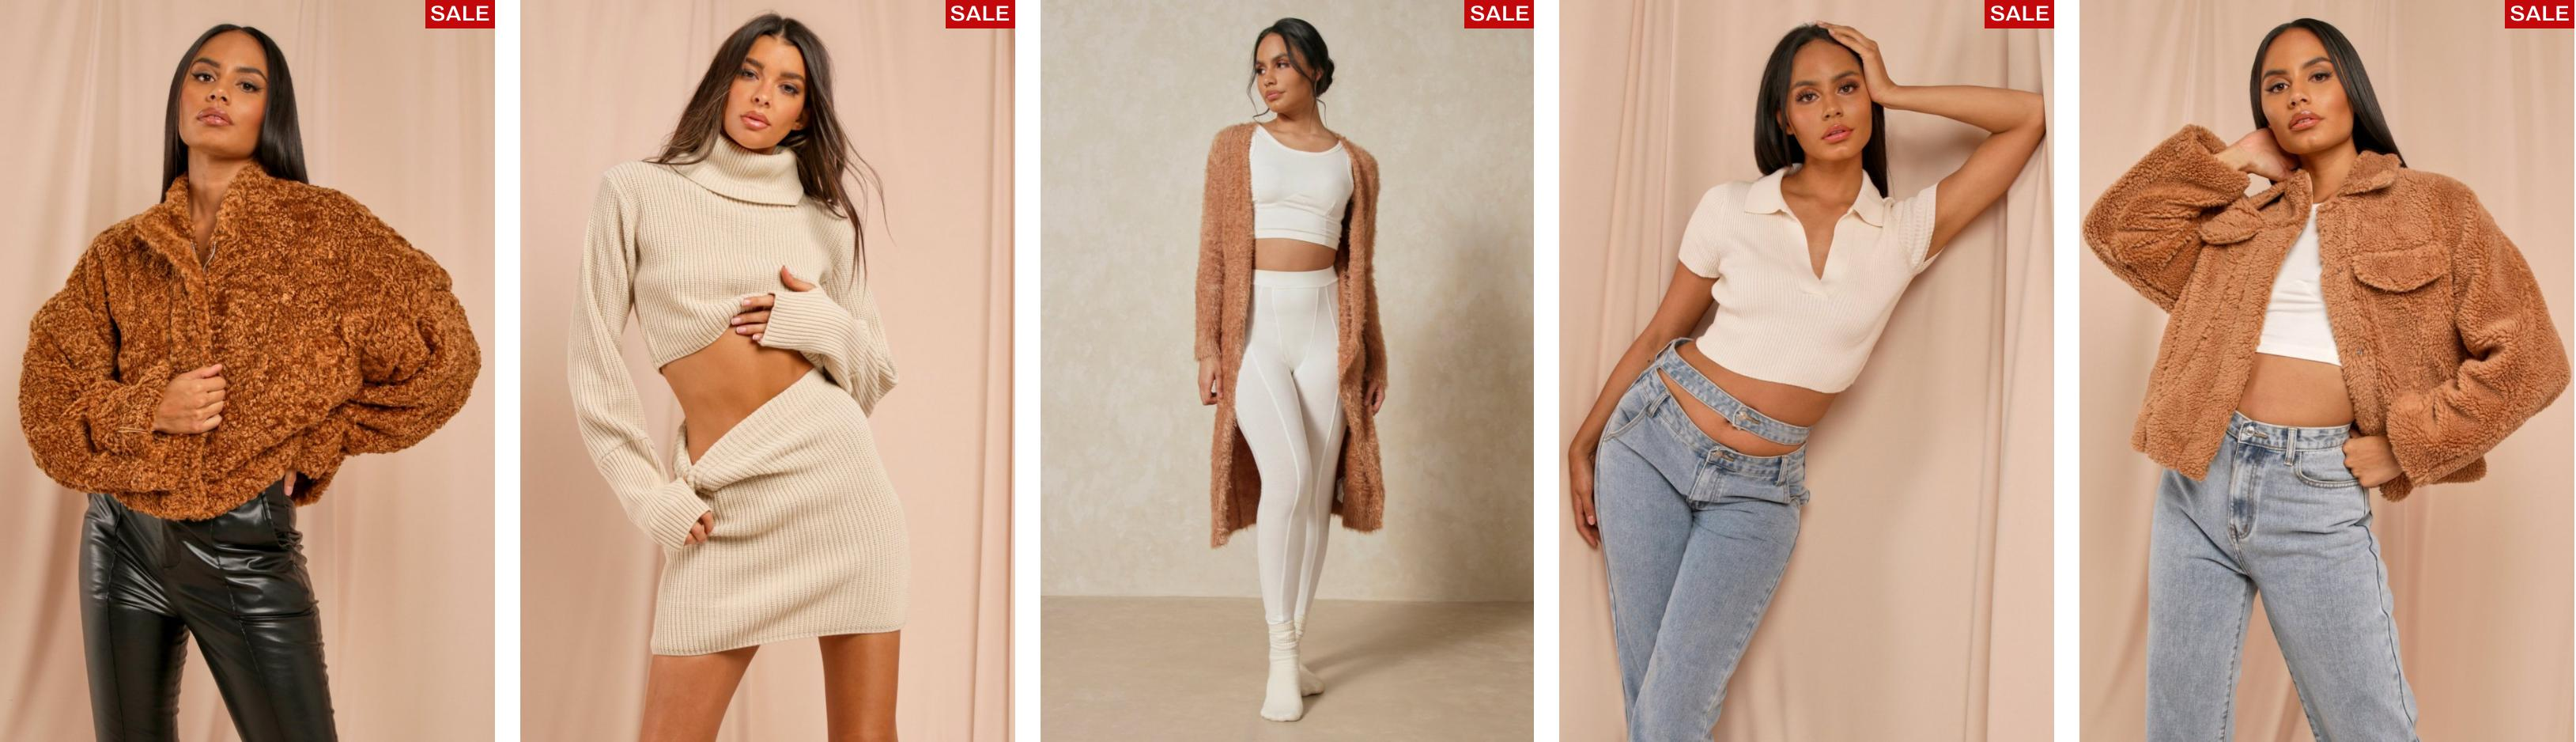 Miss Pap: Sale up to 90% off + an extra 20% off women's fashion